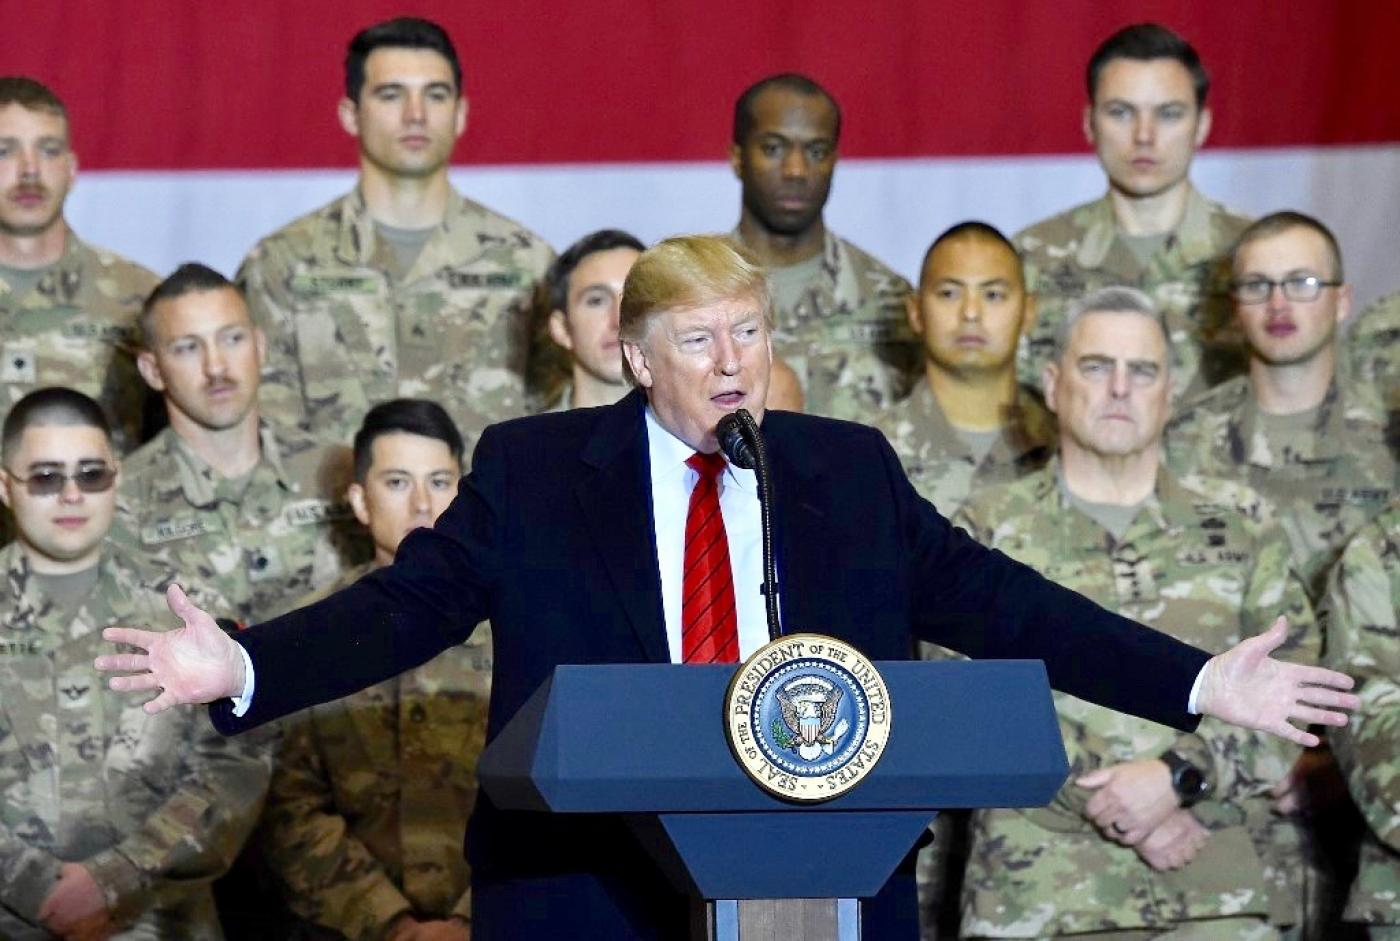 Trump may send 14,000 troops to Middle East as Iran threat grows